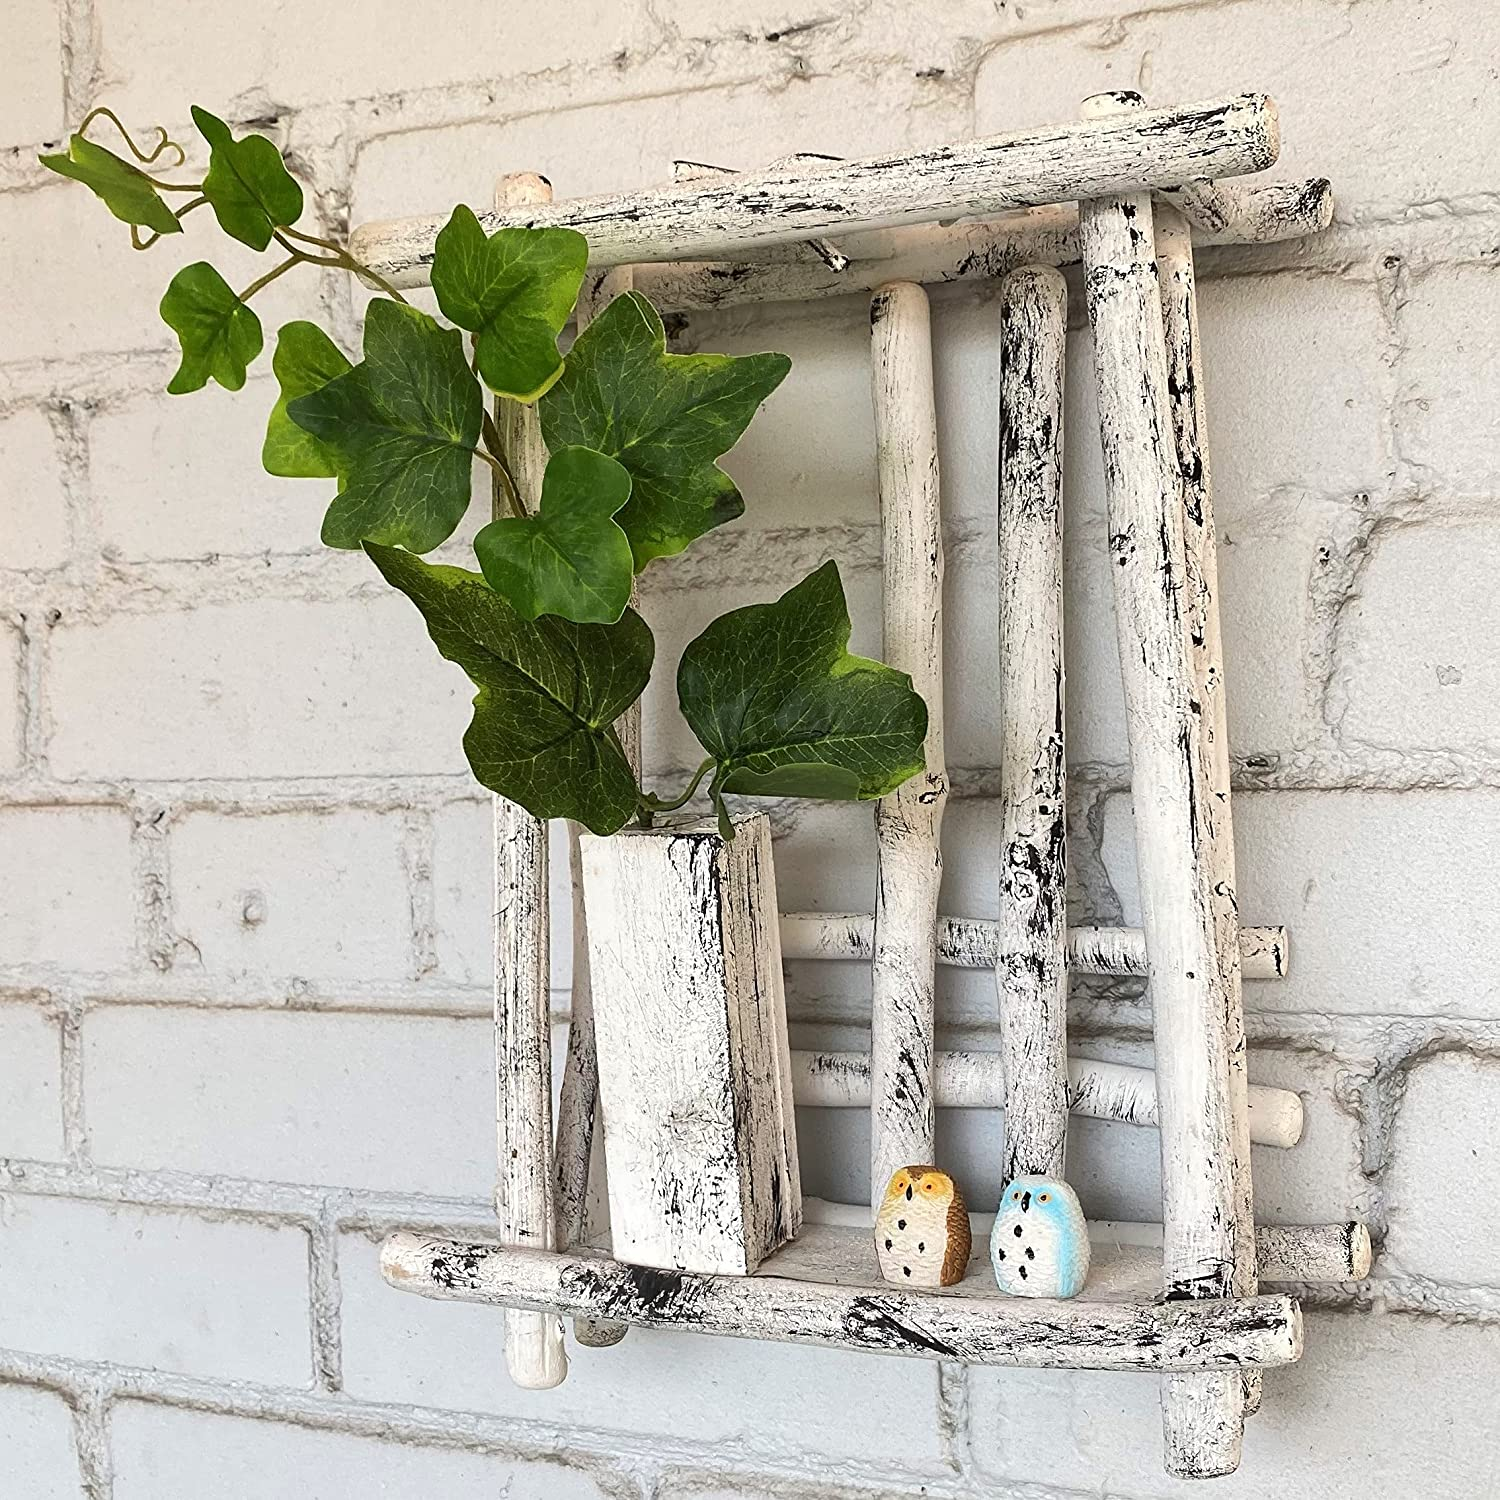 ImprovingLife Wall Vase Decor Driftwood Max 51% OFF Made and Garde Hand Home Max 88% OFF